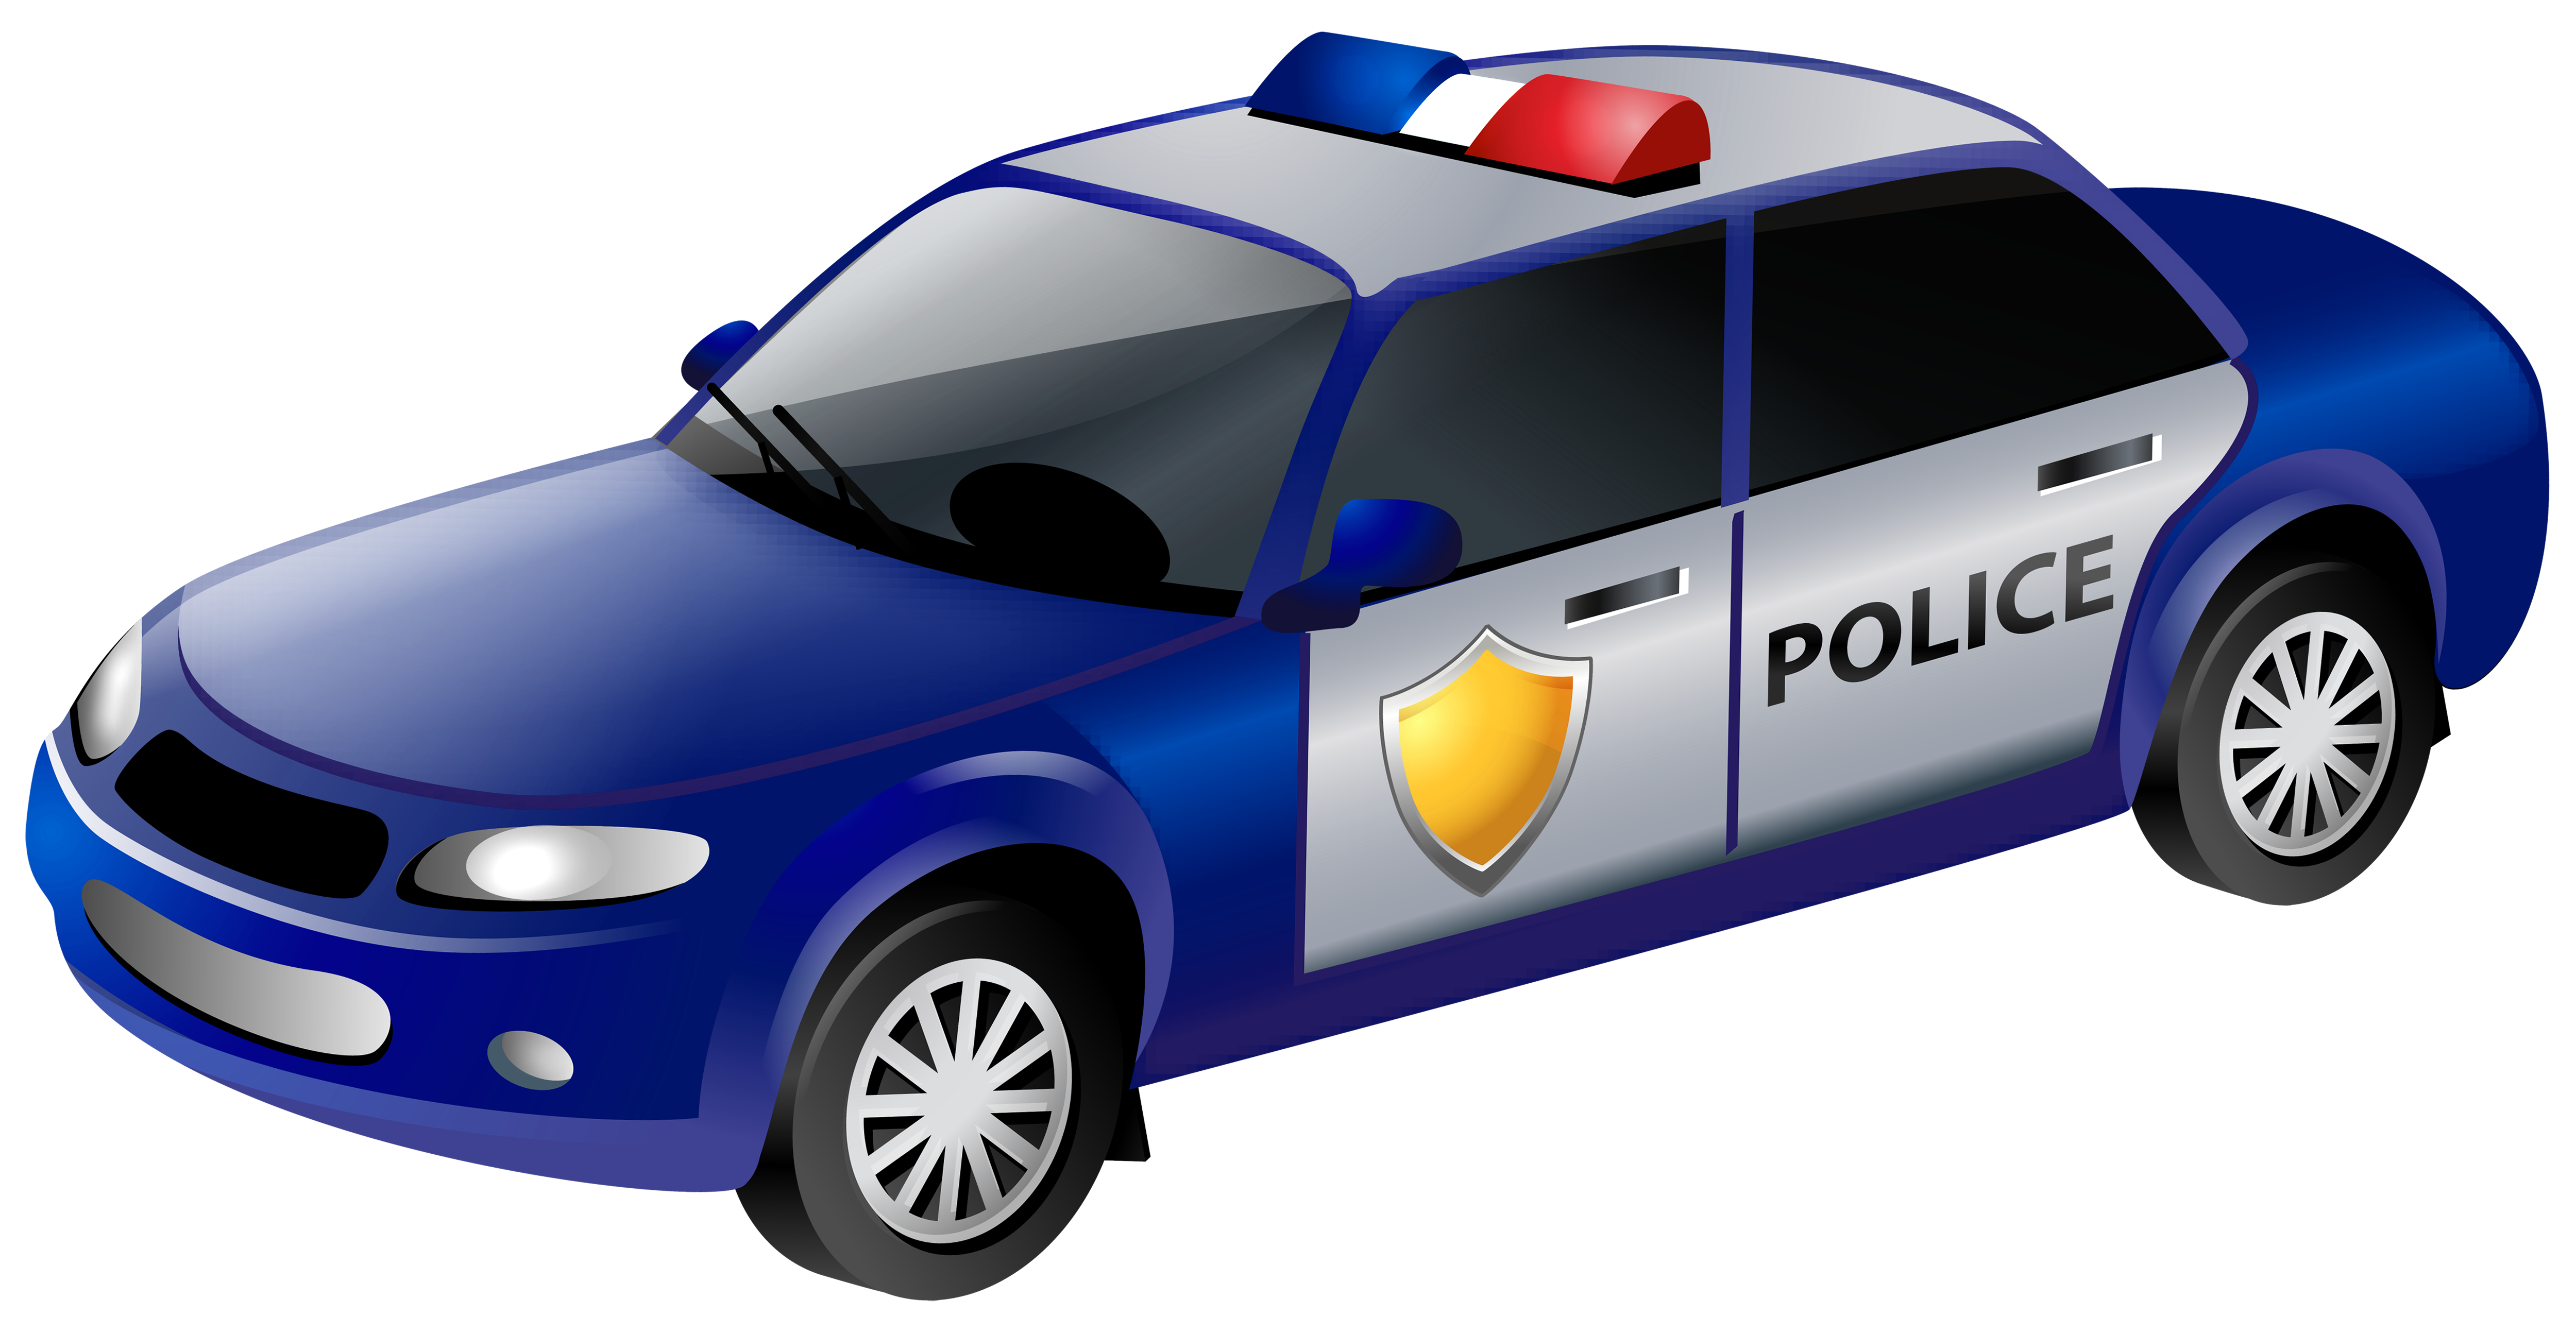 Vehicle clipart cop car Background clipart police car Clipart